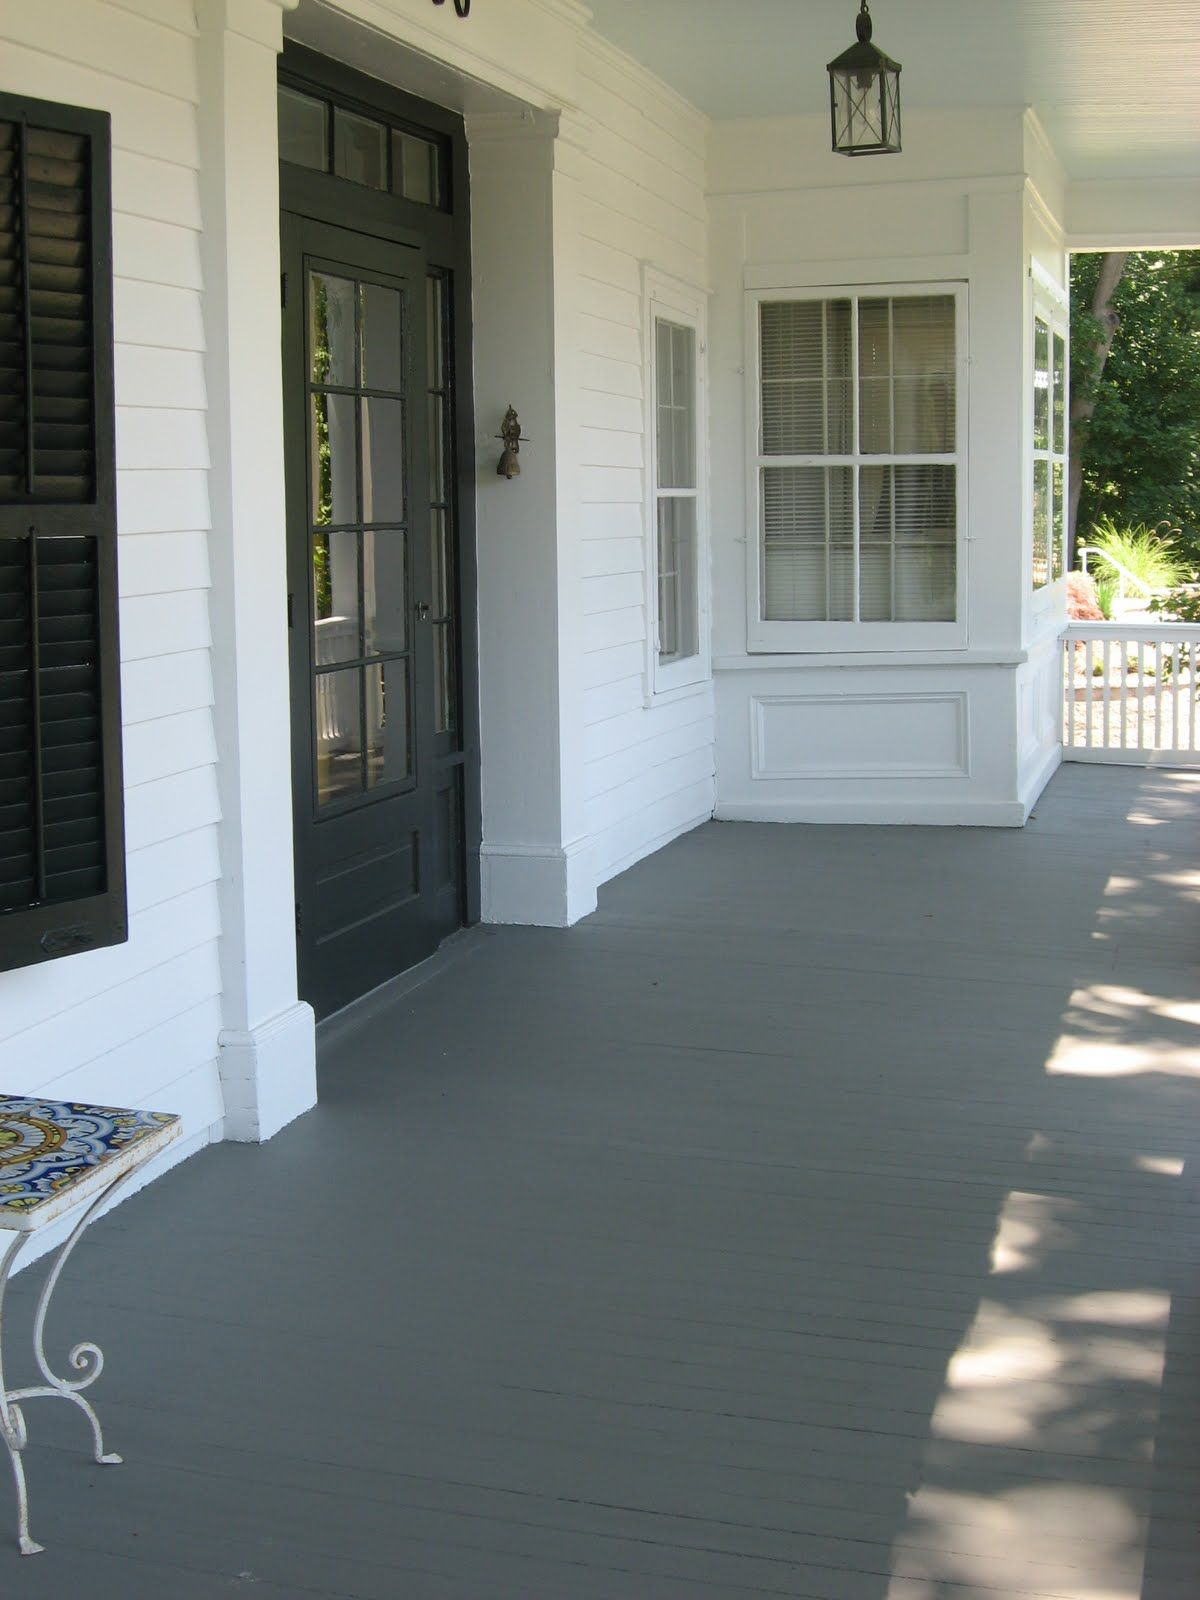 Pictures of decks painted gray that old house fading for Front entry decks